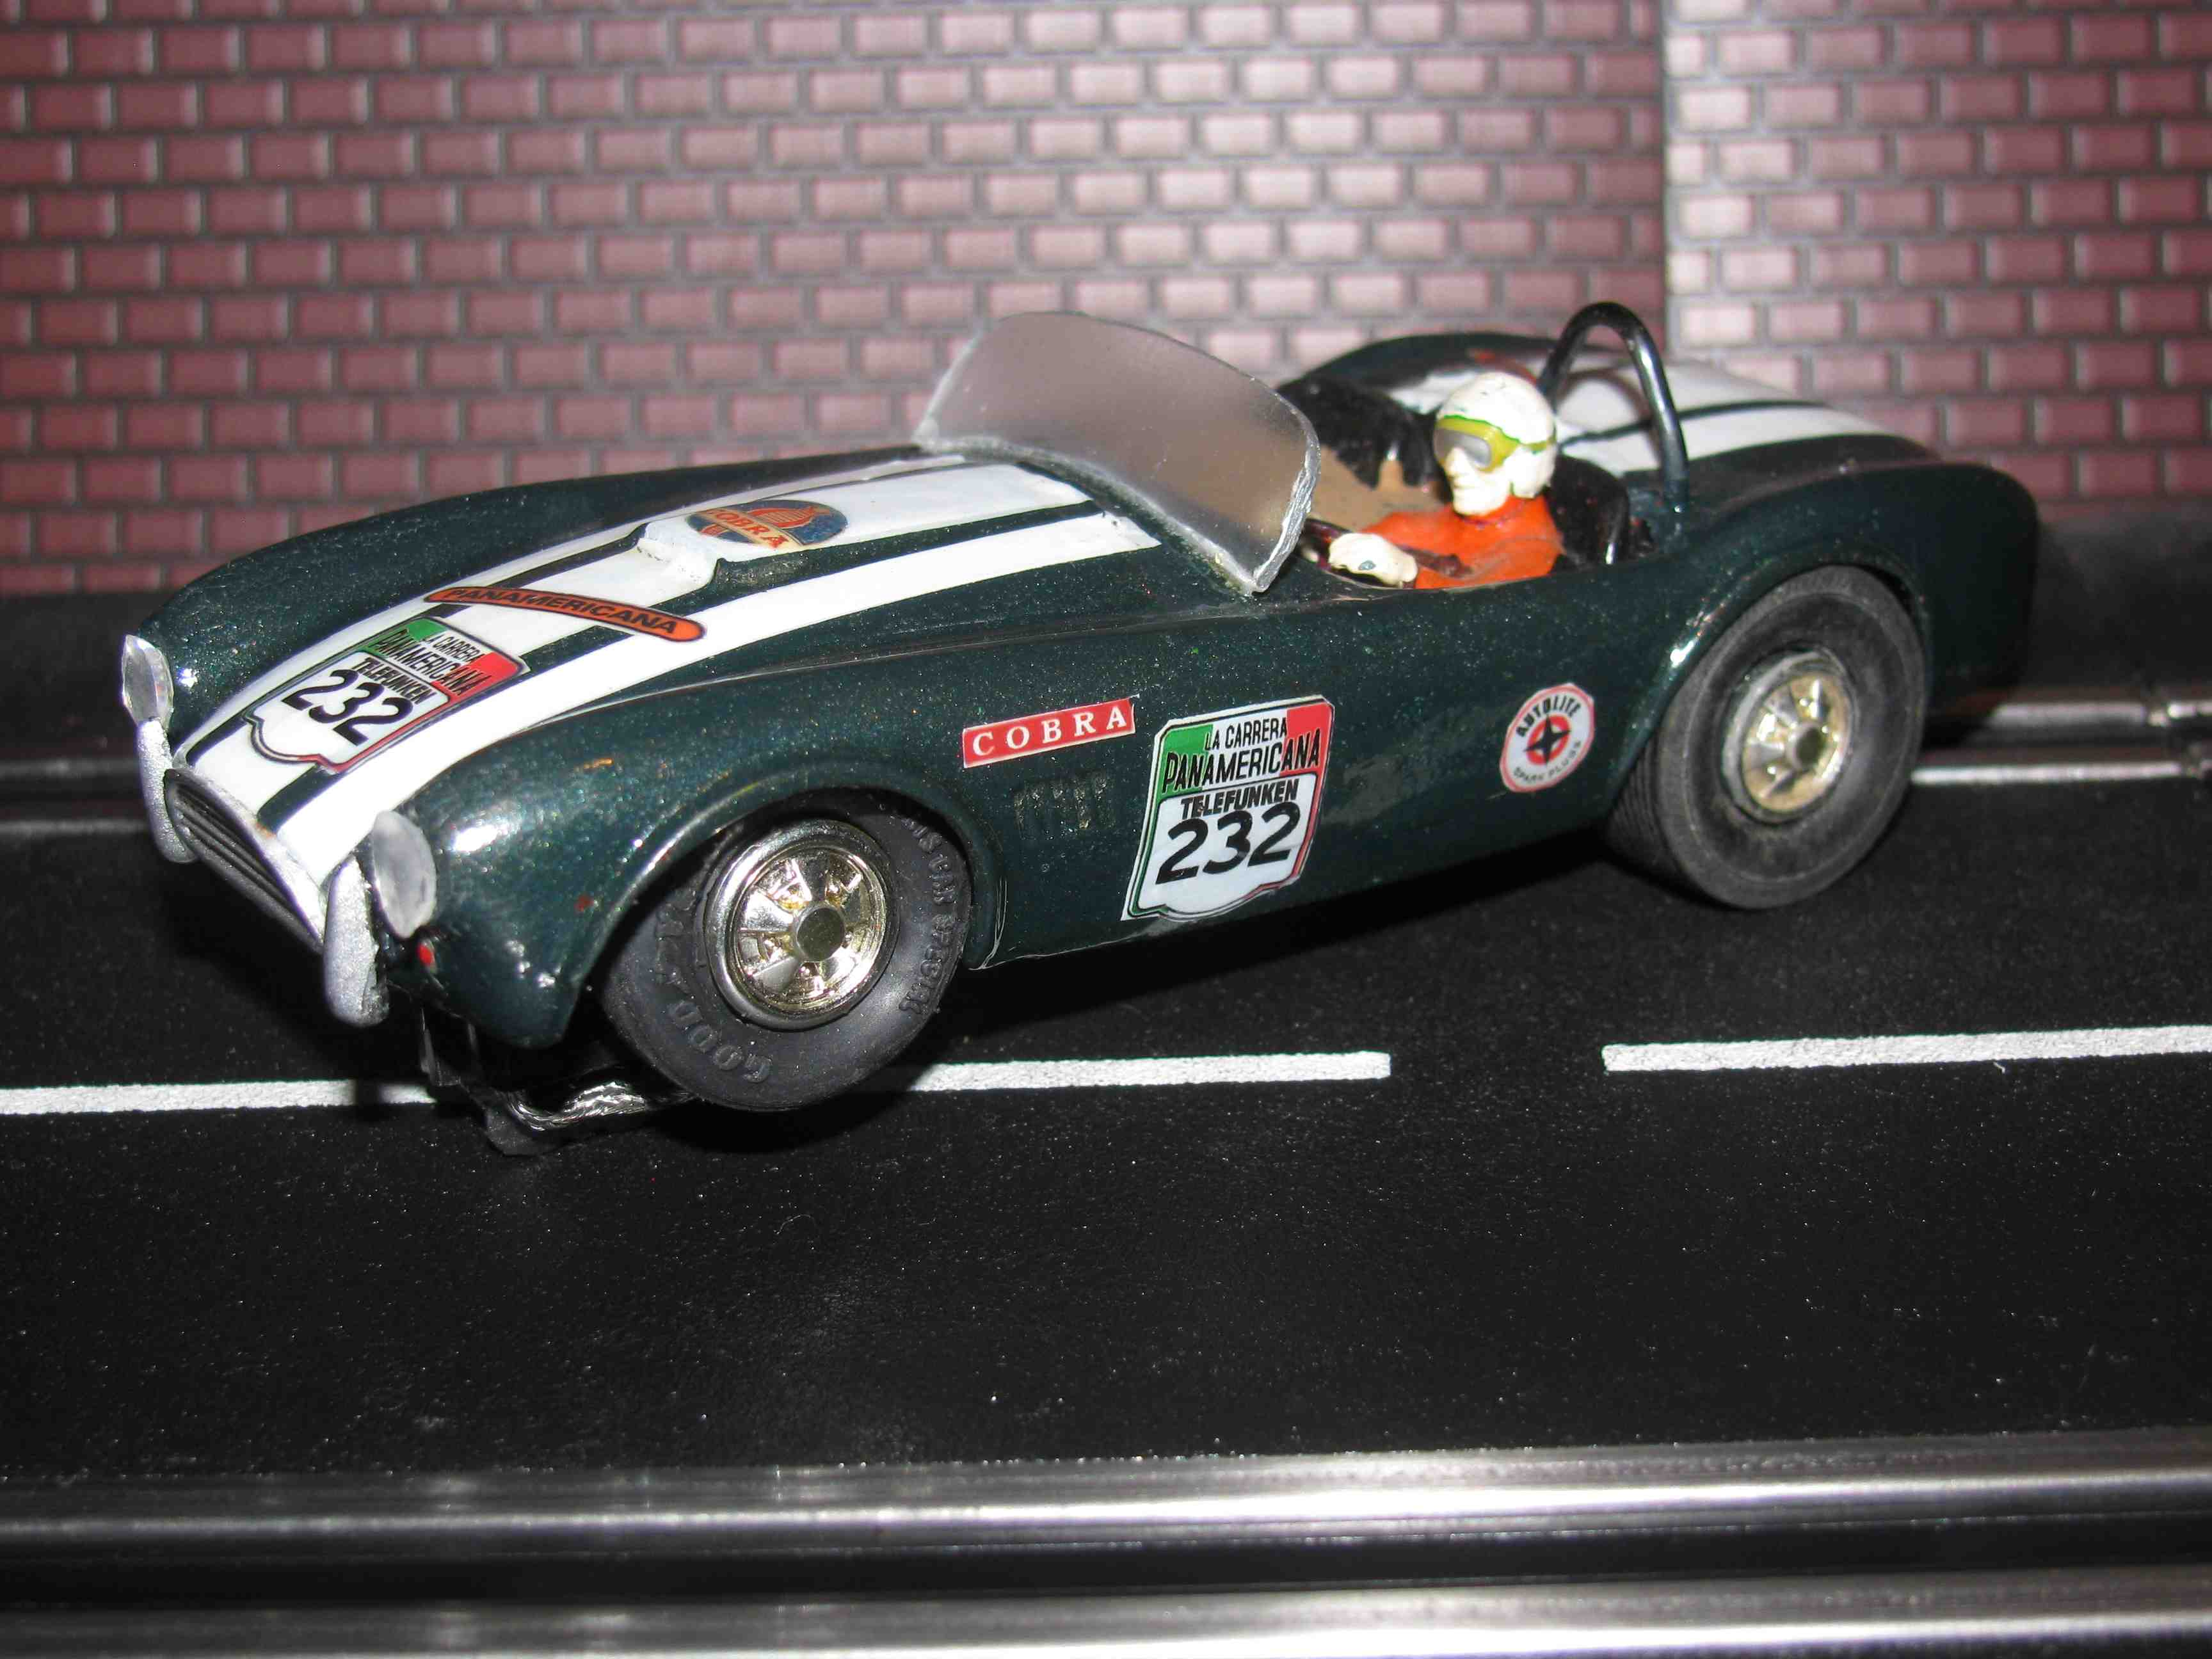 * SOLD * Revell Shelby Cobra Panamericana Slot Car 1/32 Scale – Car 232